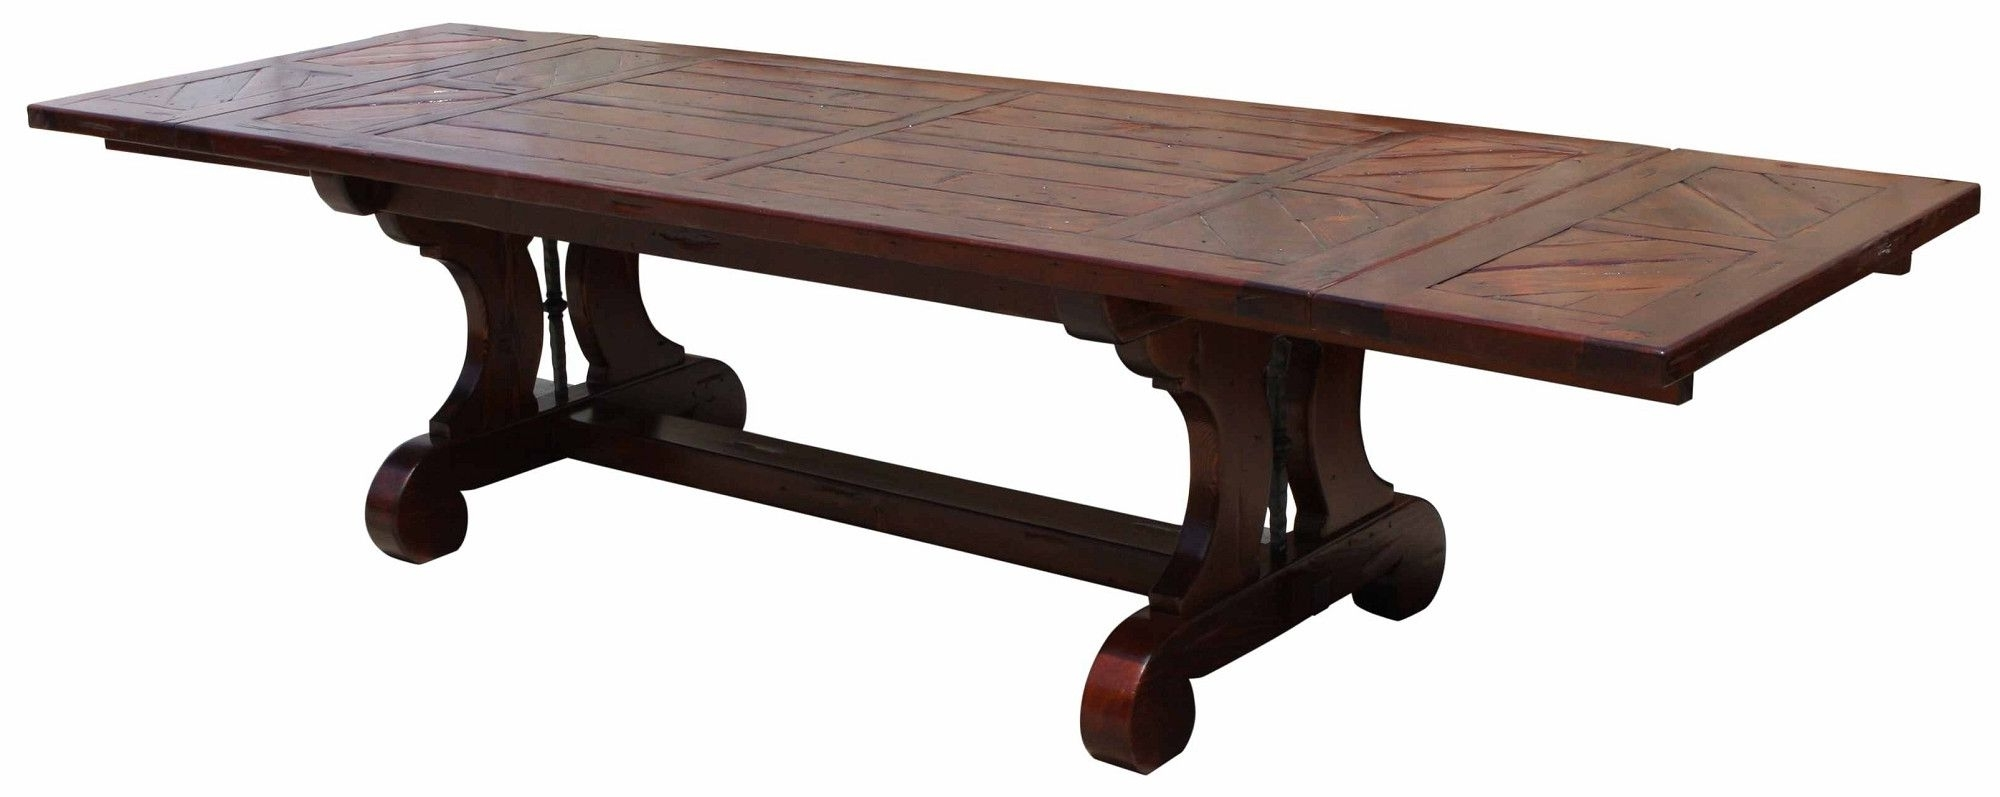 Famous Parquet Dining Tables With Buy A Handmade Lourdes Dining Table – Parquet Top, Made To Order (View 23 of 25)